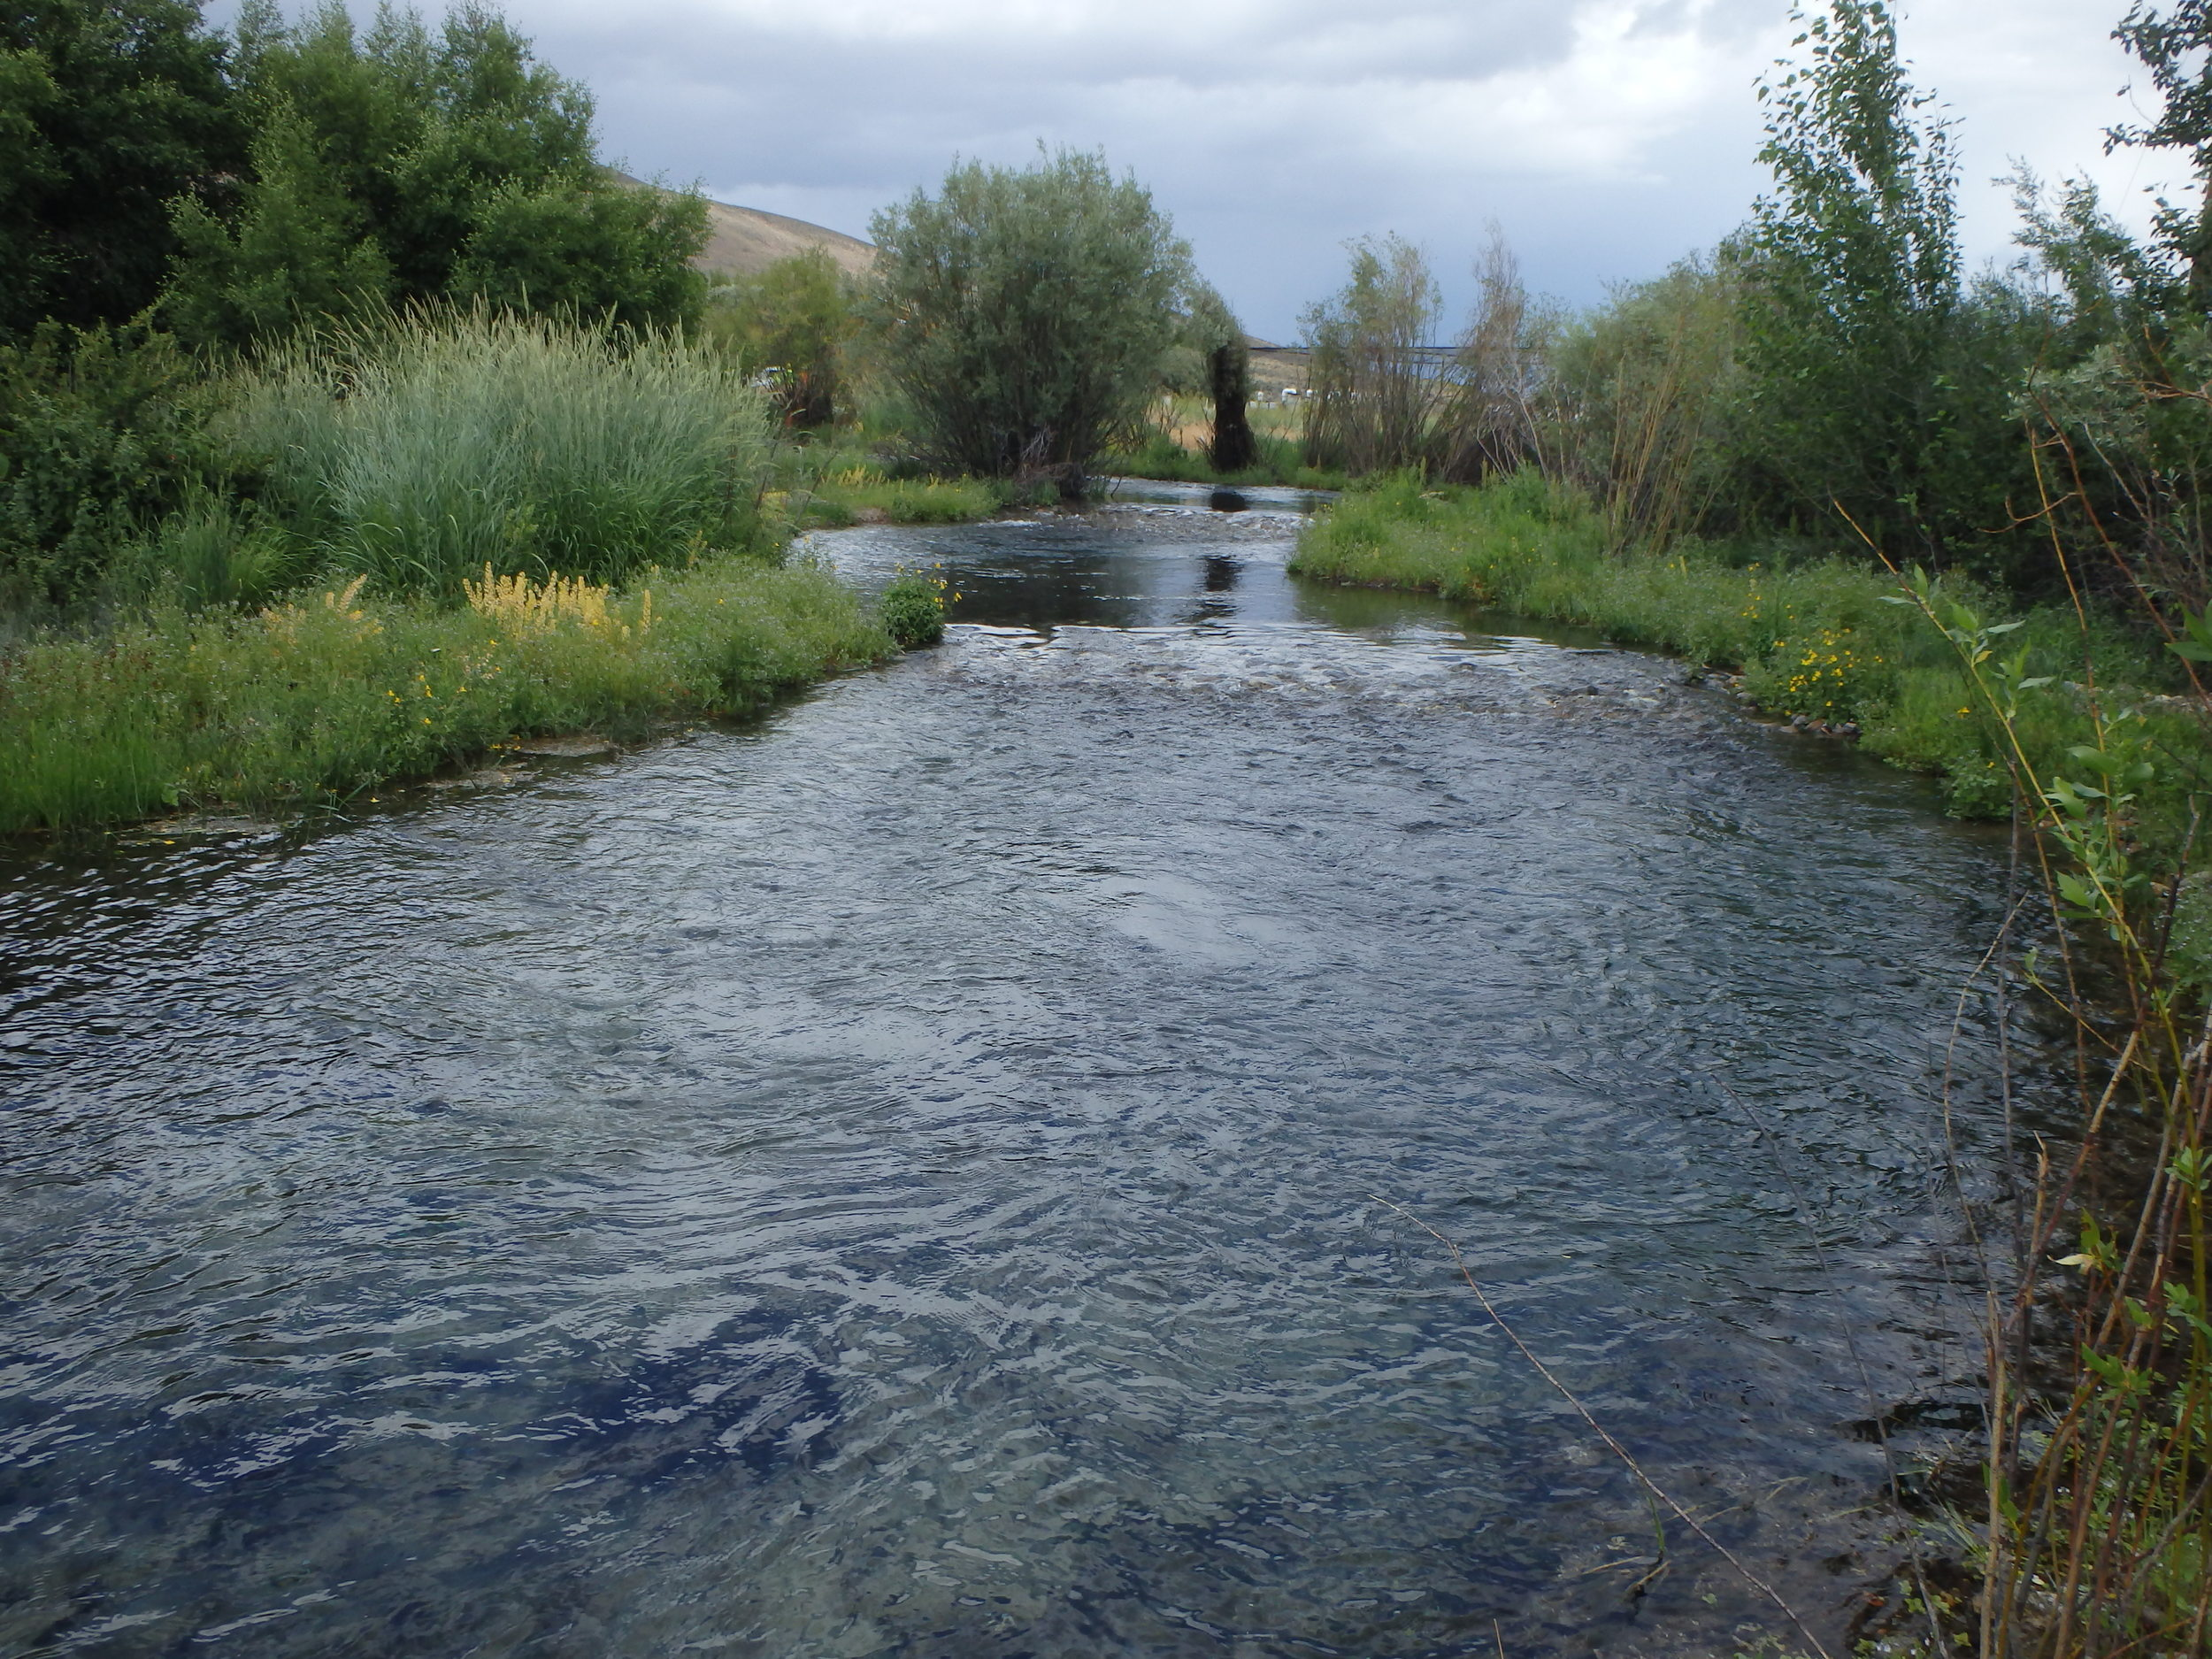 Summer 2015 - After - creek is narrowed, contains distinct riffles and pools, and is surrounded by lush riparian vegetation